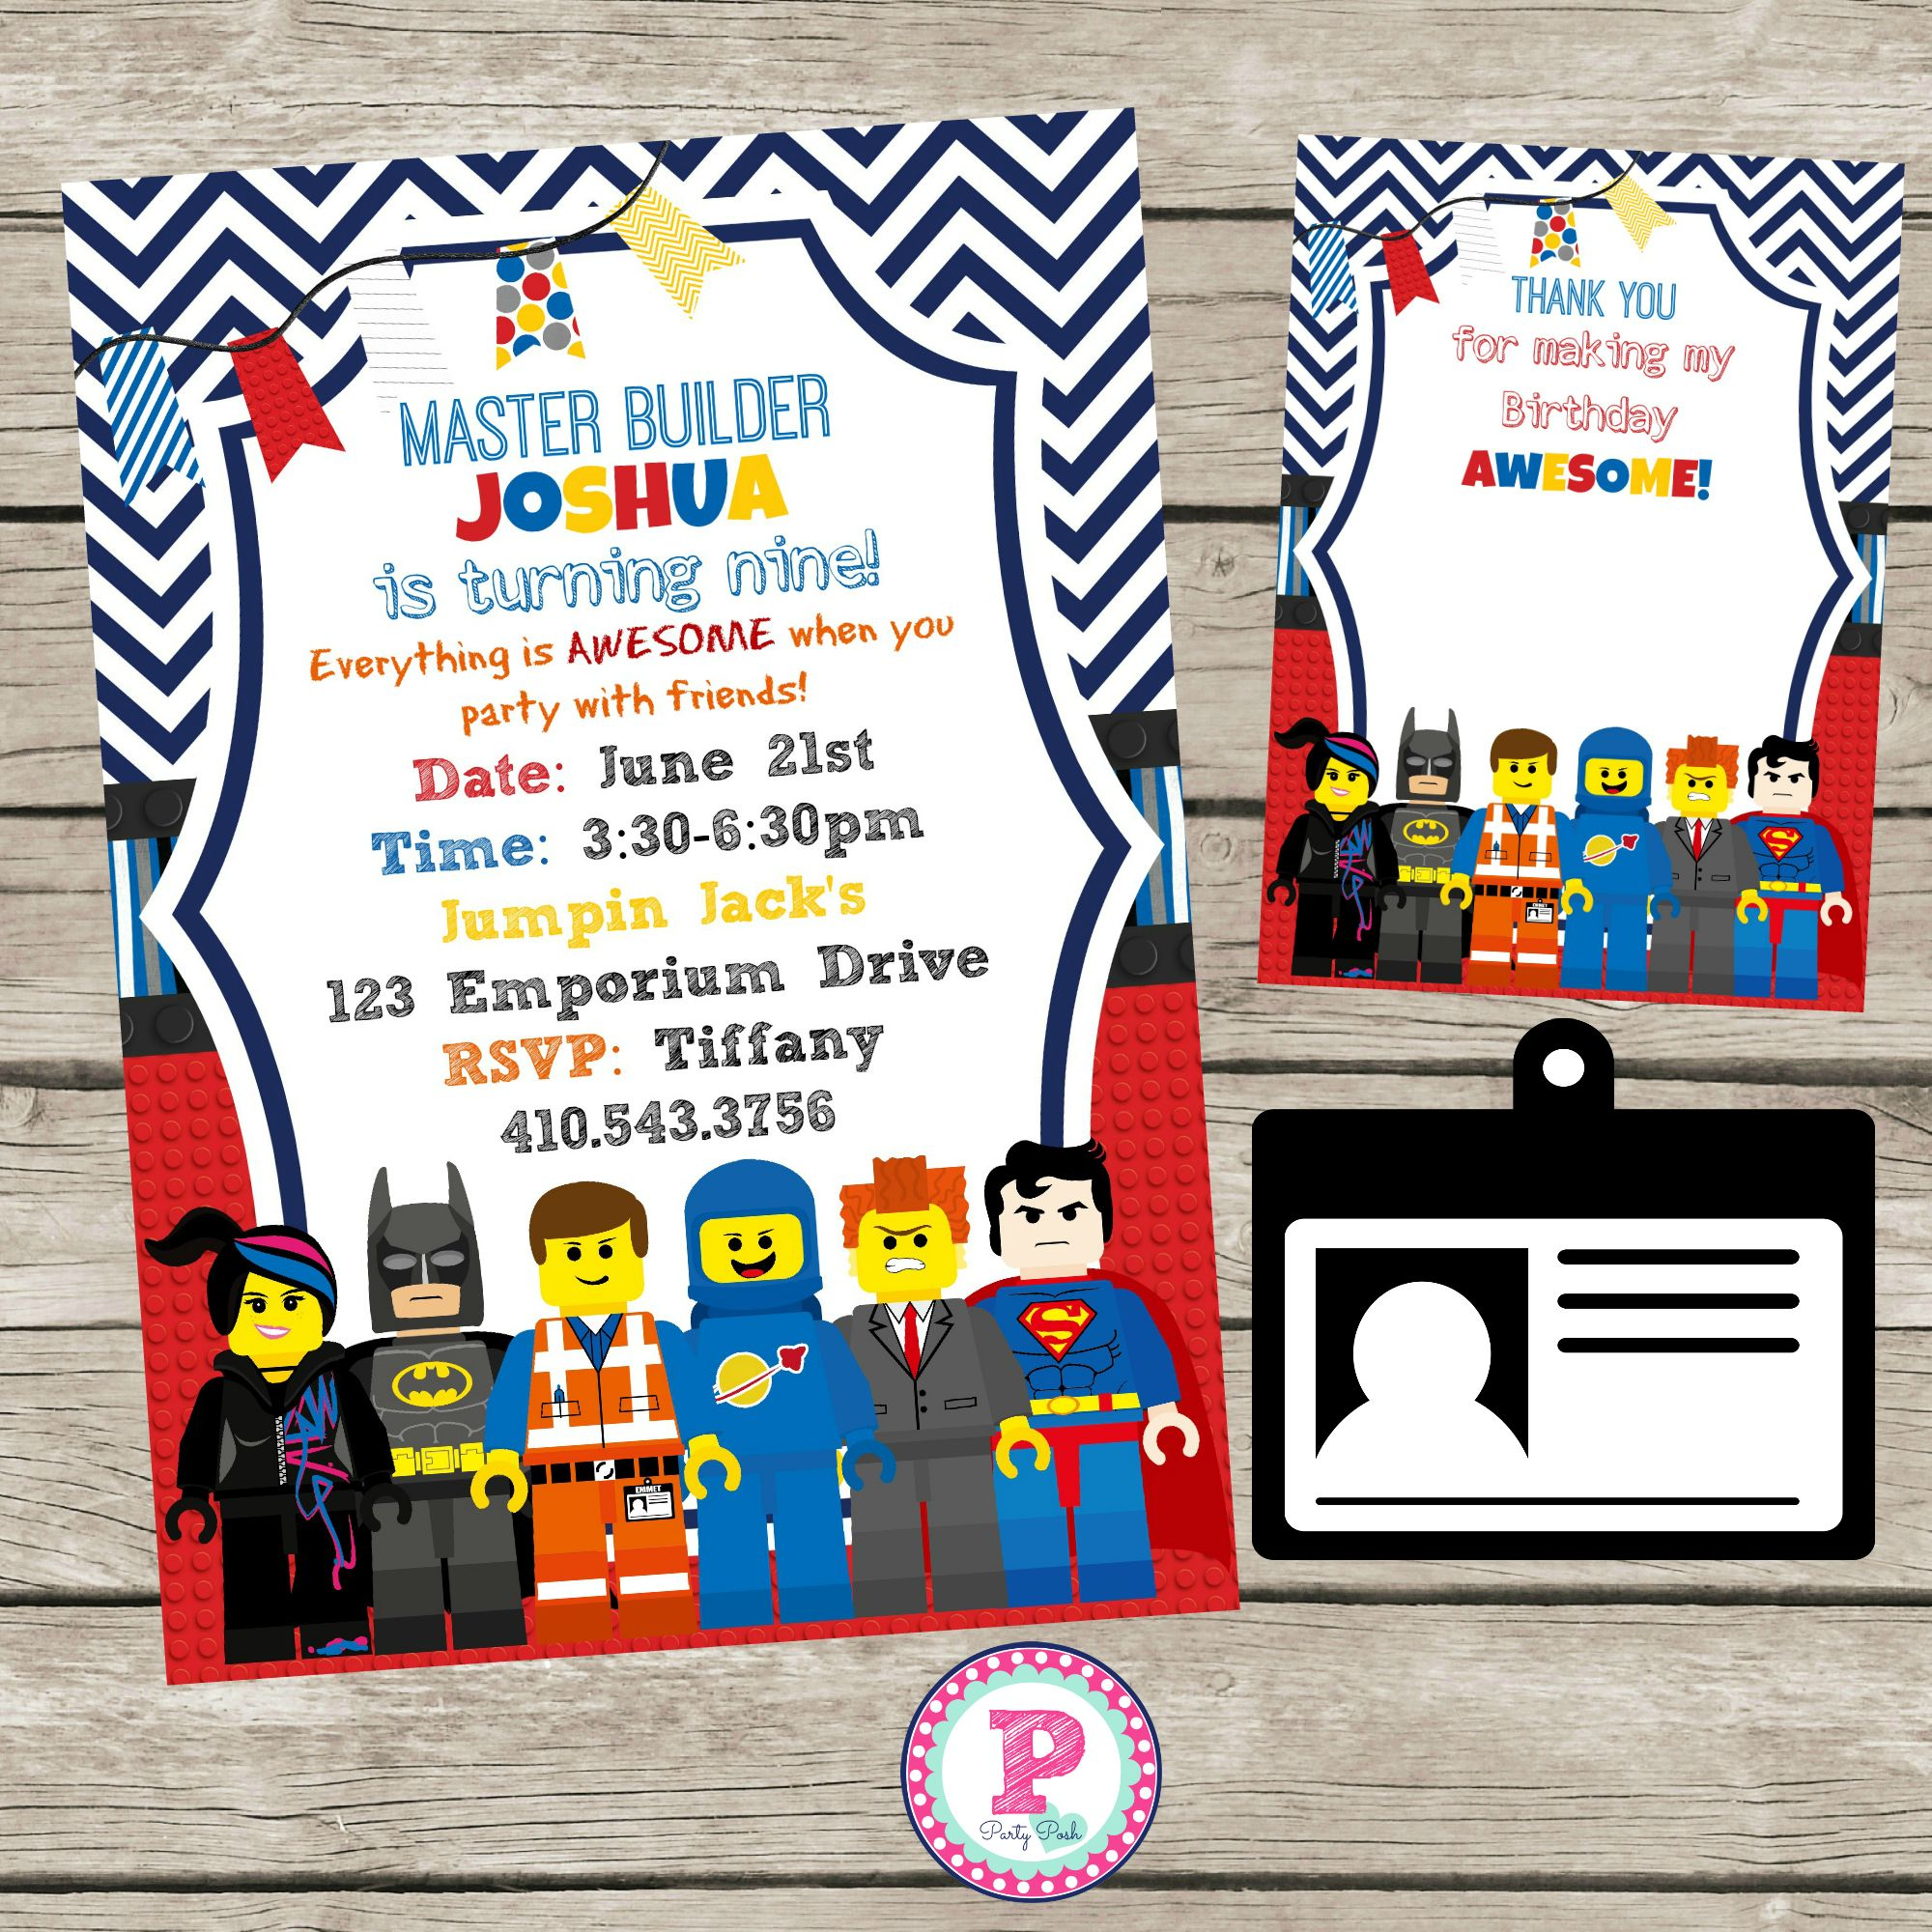 Navy Chevron Lego Movie Birthday Party Invitation